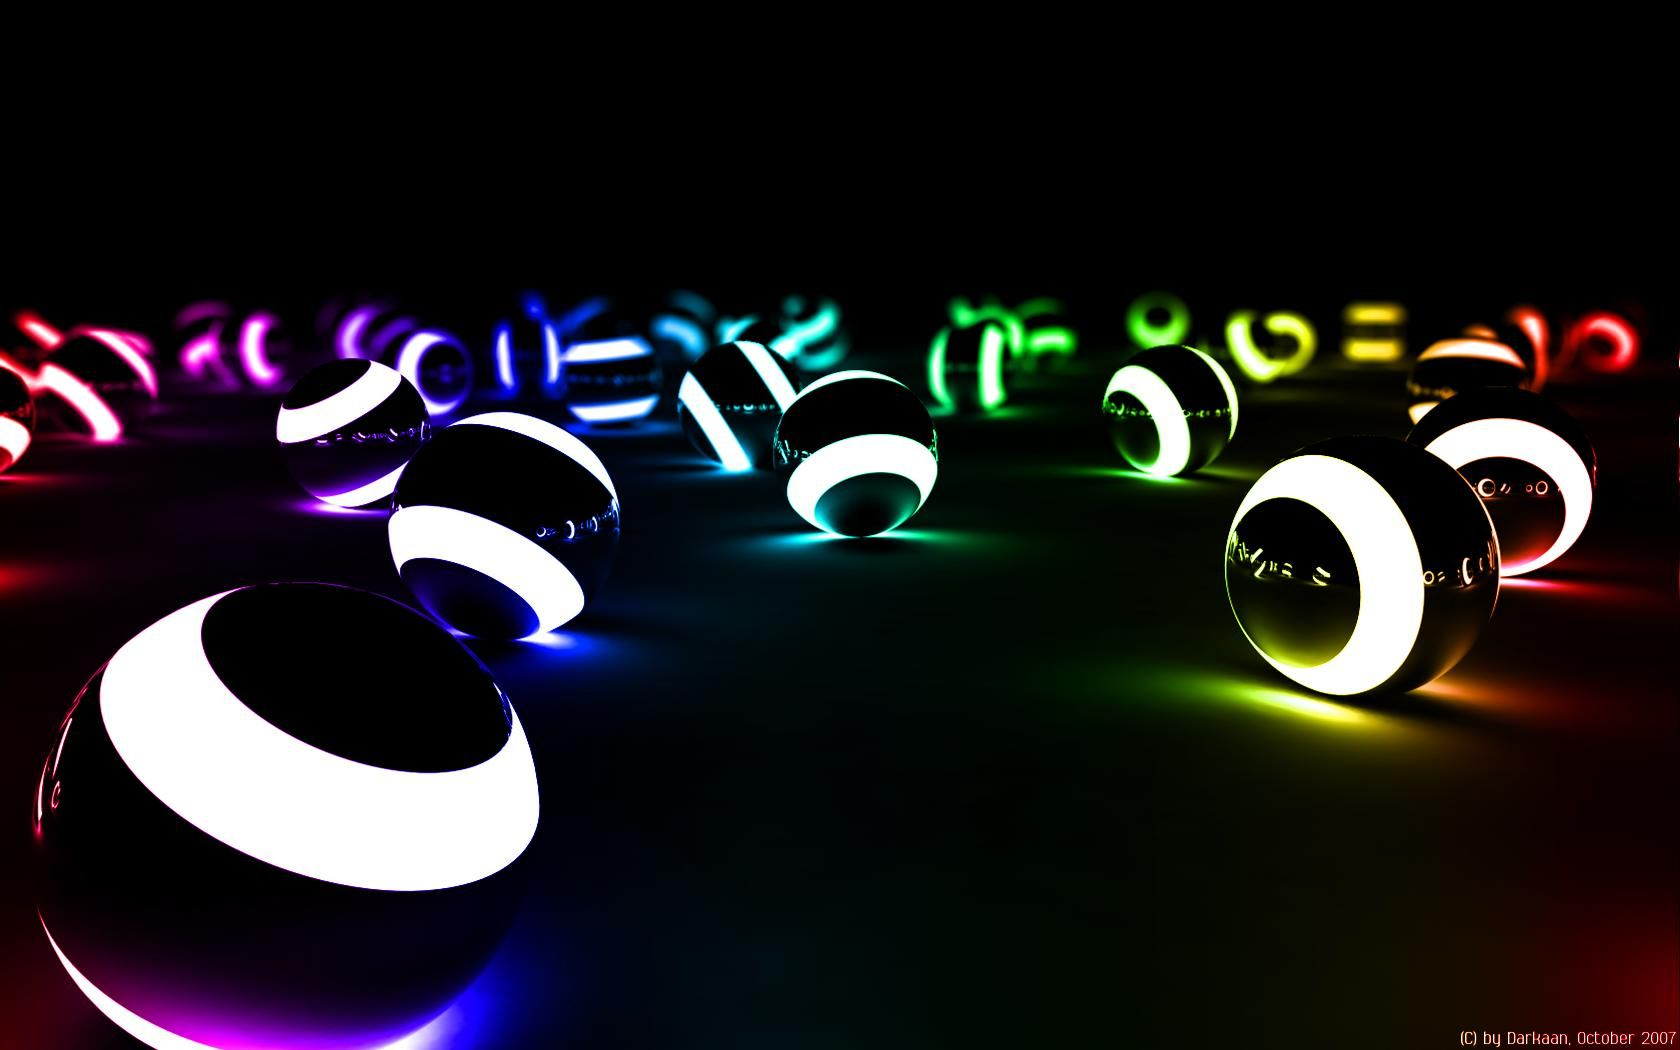 1680x1050 Hd Neon Glow Pool Balls Neon Light Wallpaper Neon